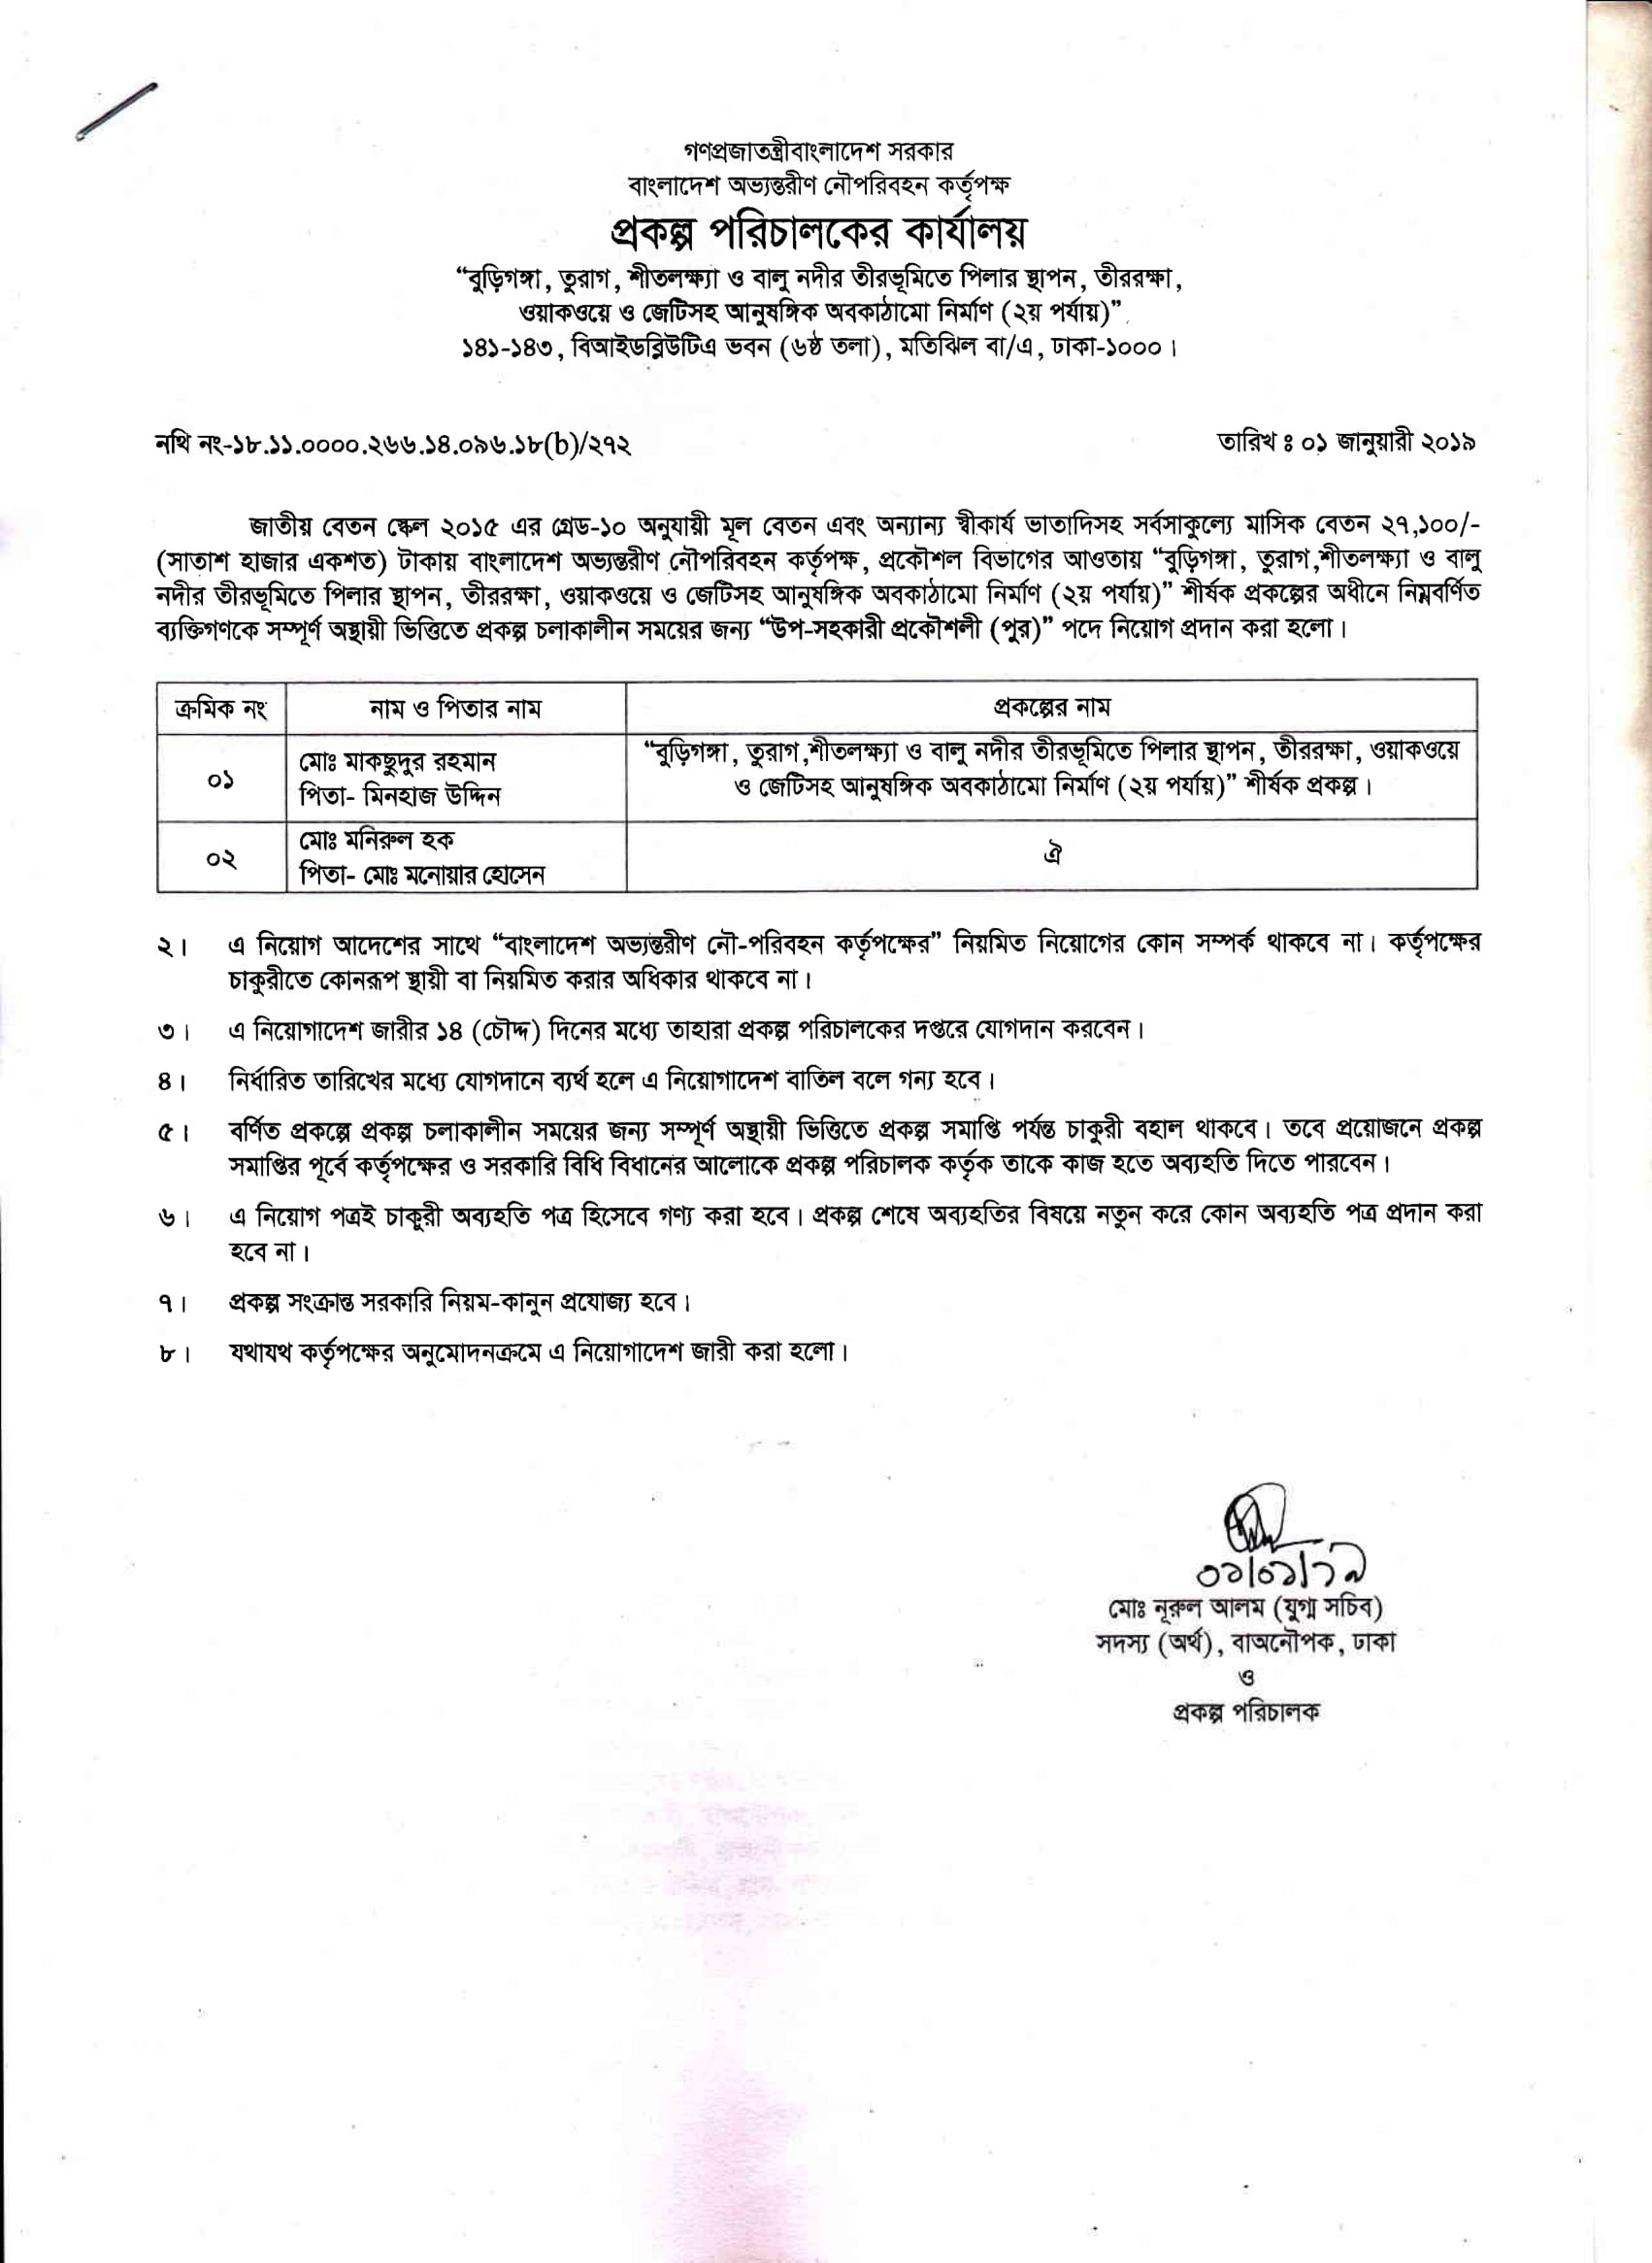 Bangladesh Inland Water Transport Authority BIWTA Job Circular Result 2019